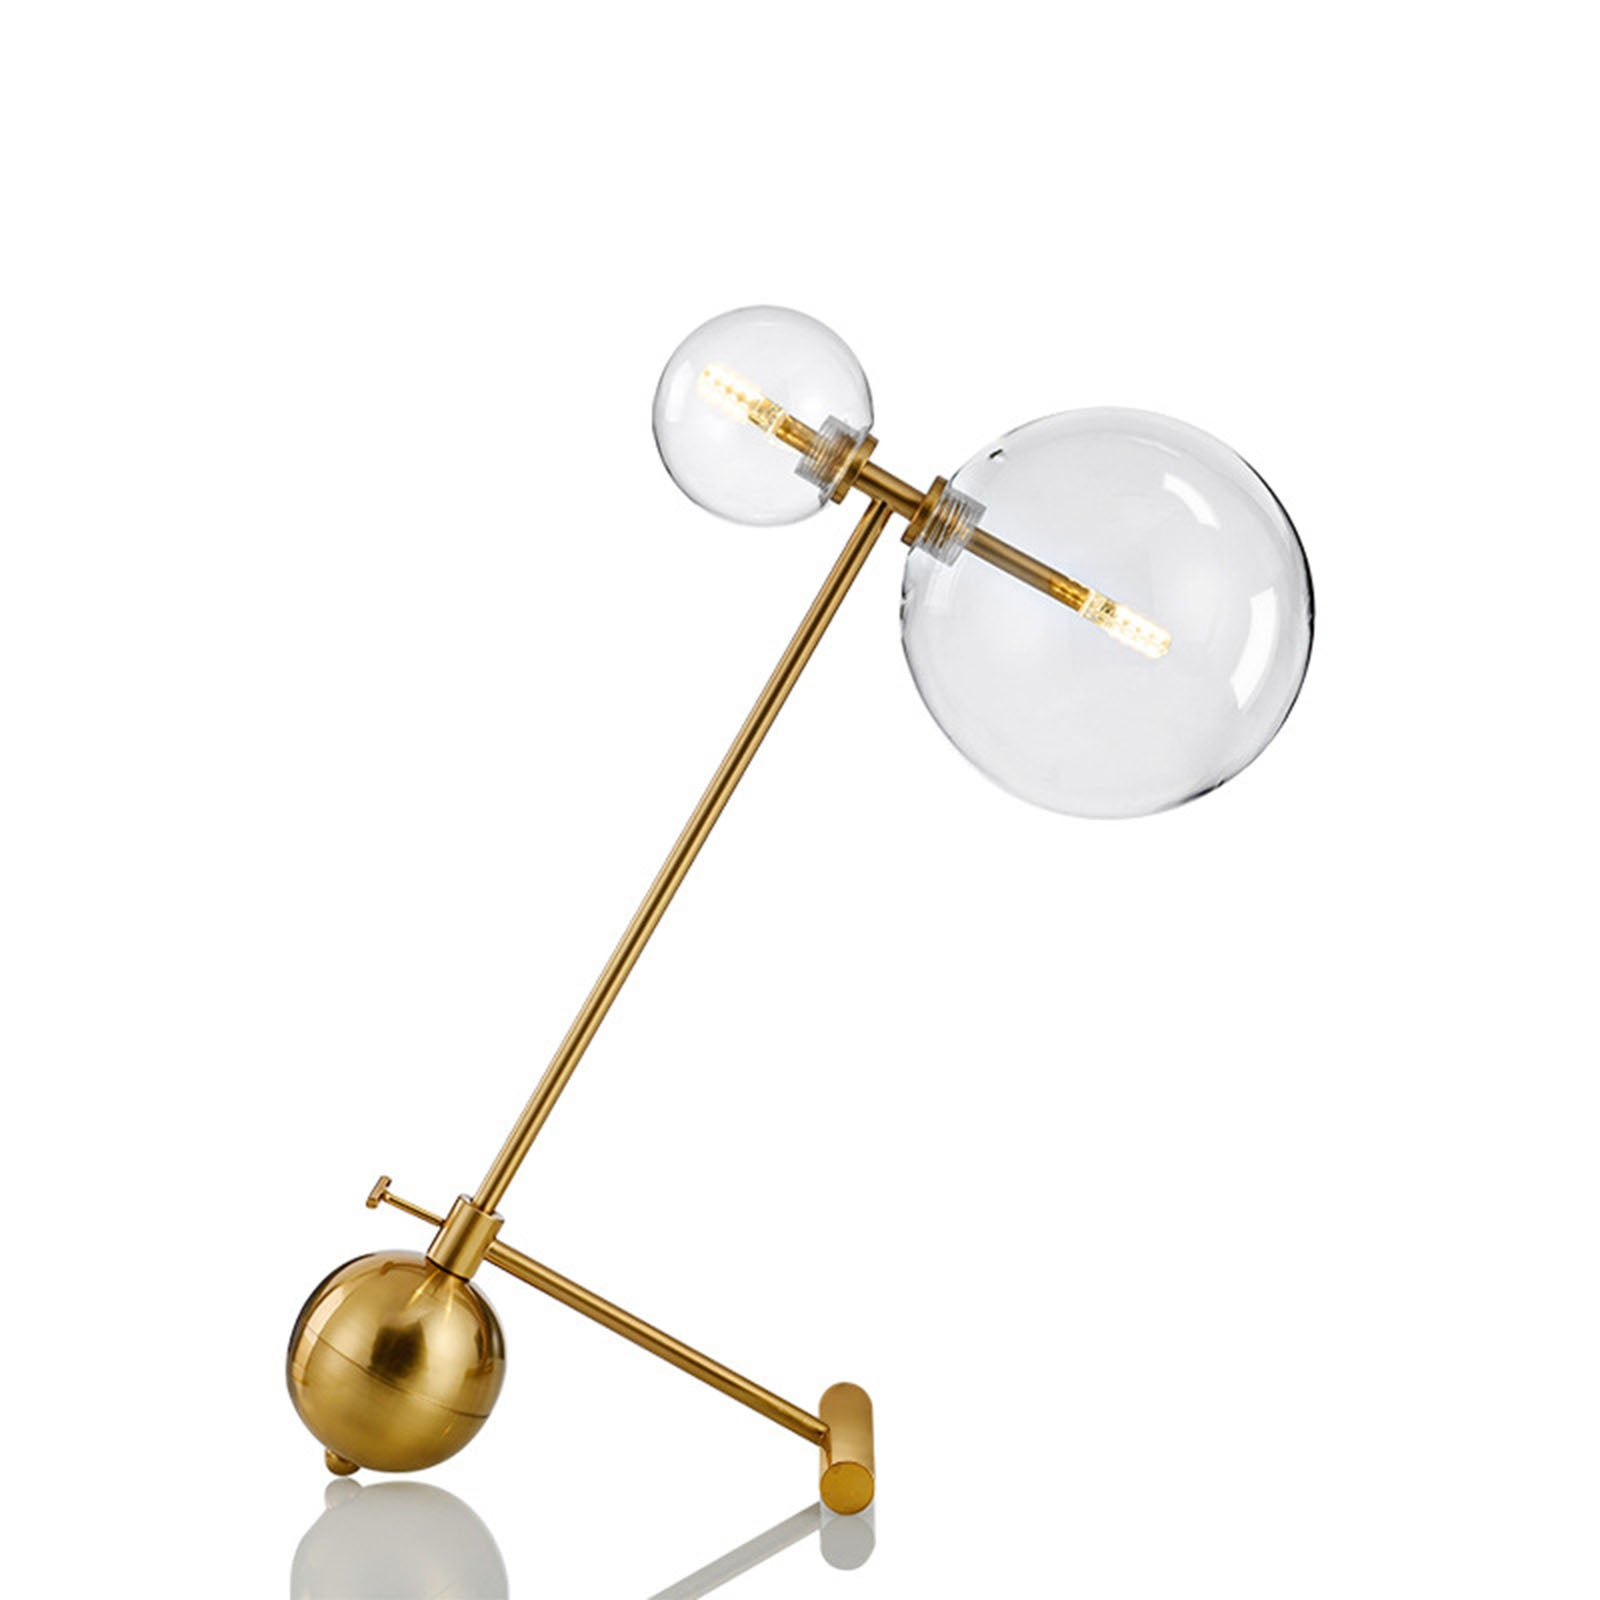 Waltz Table lamp CY-NEW-087 - ebarza